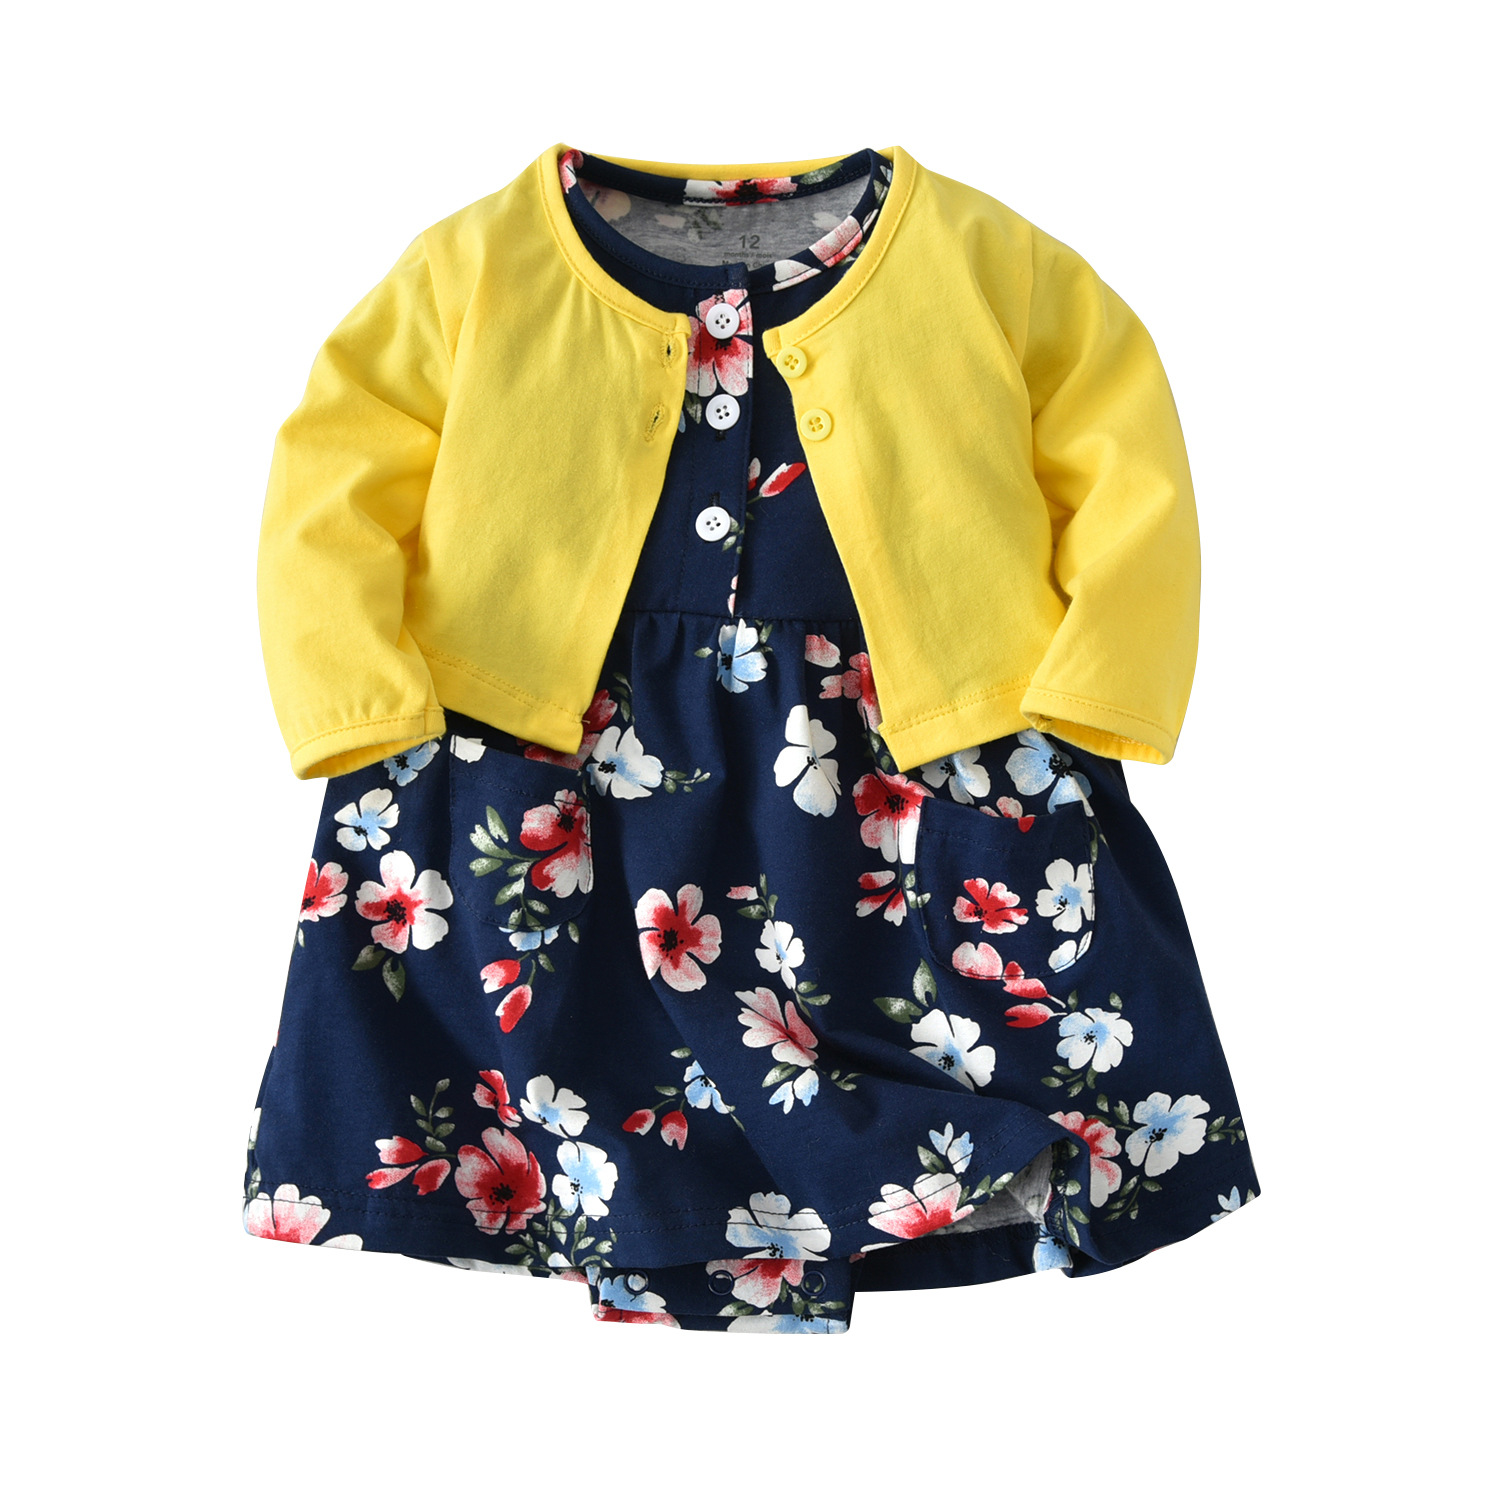 New Hot Sale 2PCS Baby Girls Clothes Cotton Long-sleeved Yellow Jacket + Foral Dress Girls Spring and Autumn